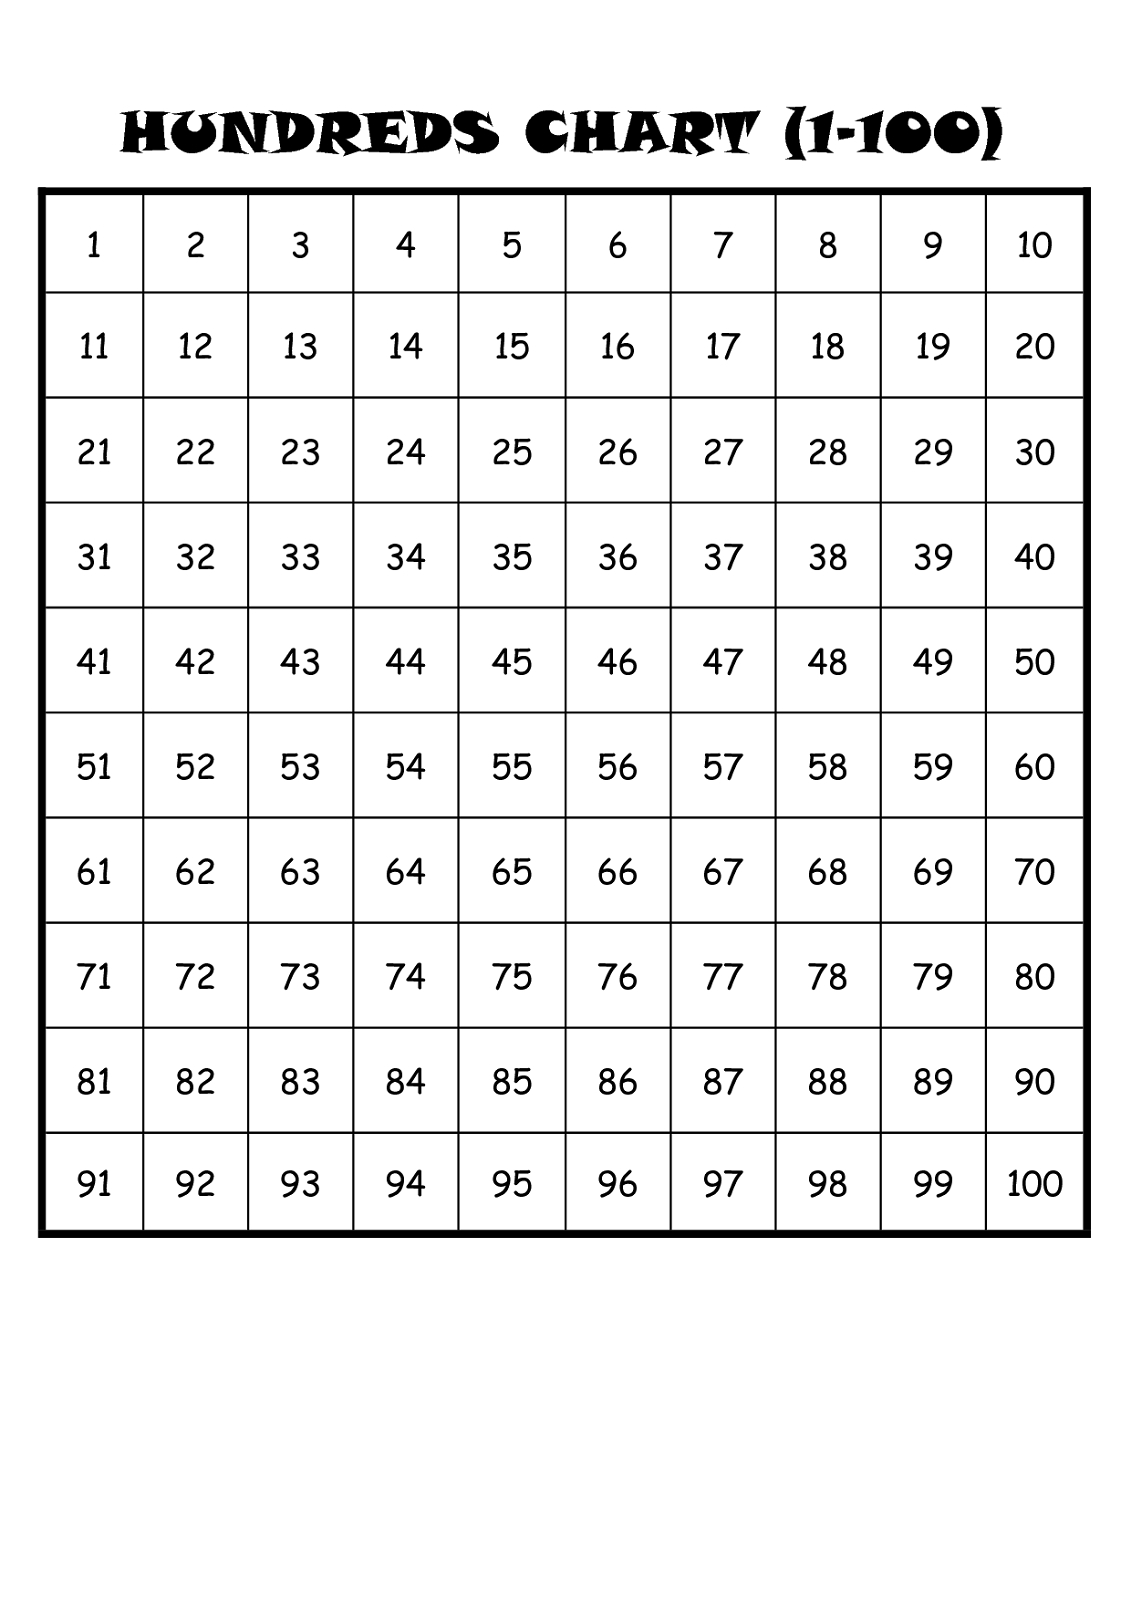 Number Sheet 1-100 To Print | Math Worksheets For Kids | Kids Math - Free Printable Number Worksheets 1 100